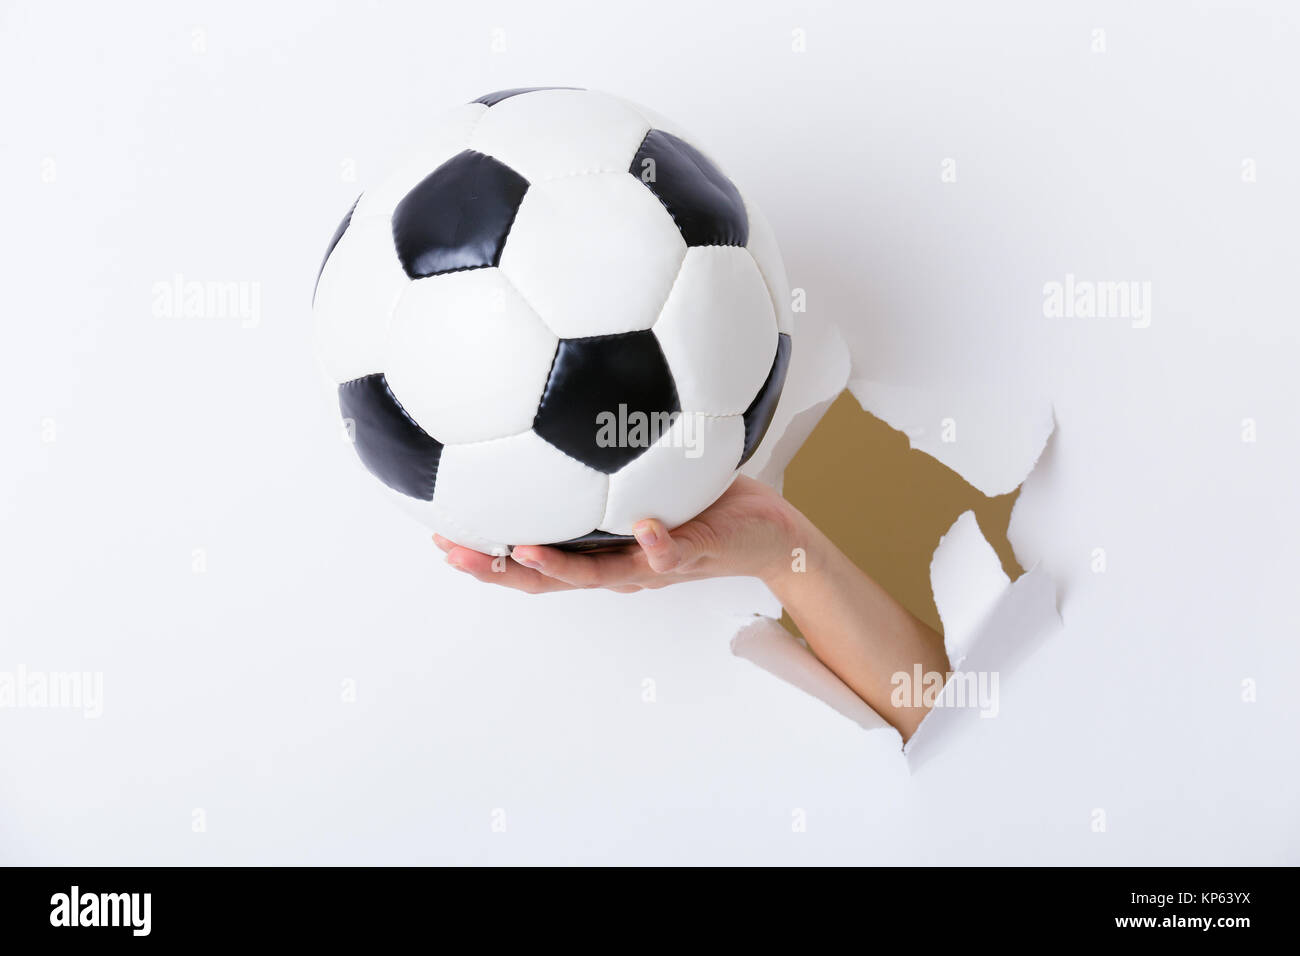 Hand holding soccer ball through the paper hole - Stock Image